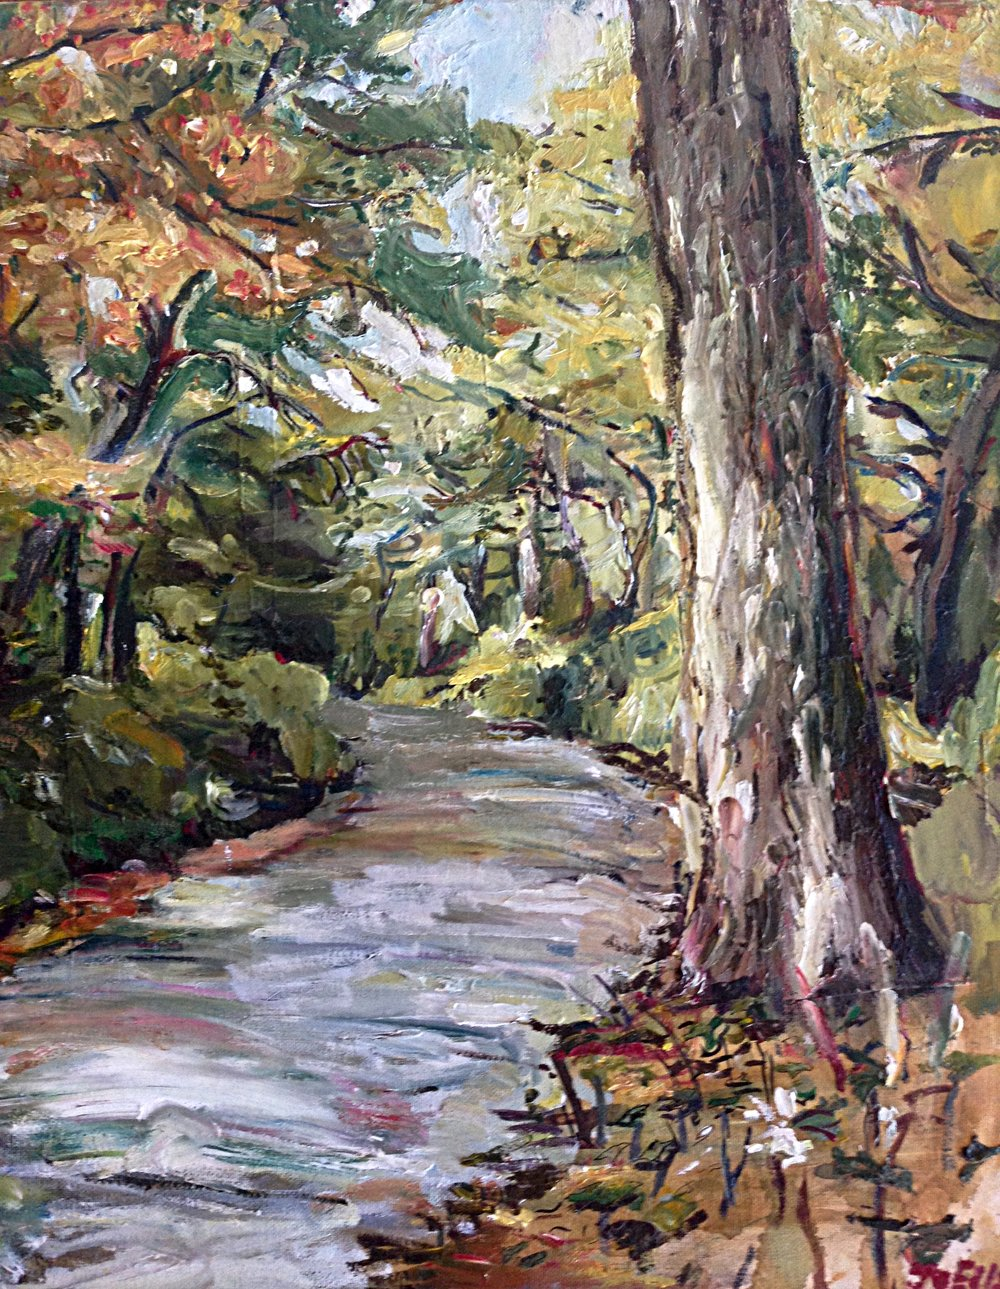 Take the Road to Snap Jack Lake, Oil on Canvas, 18/24""